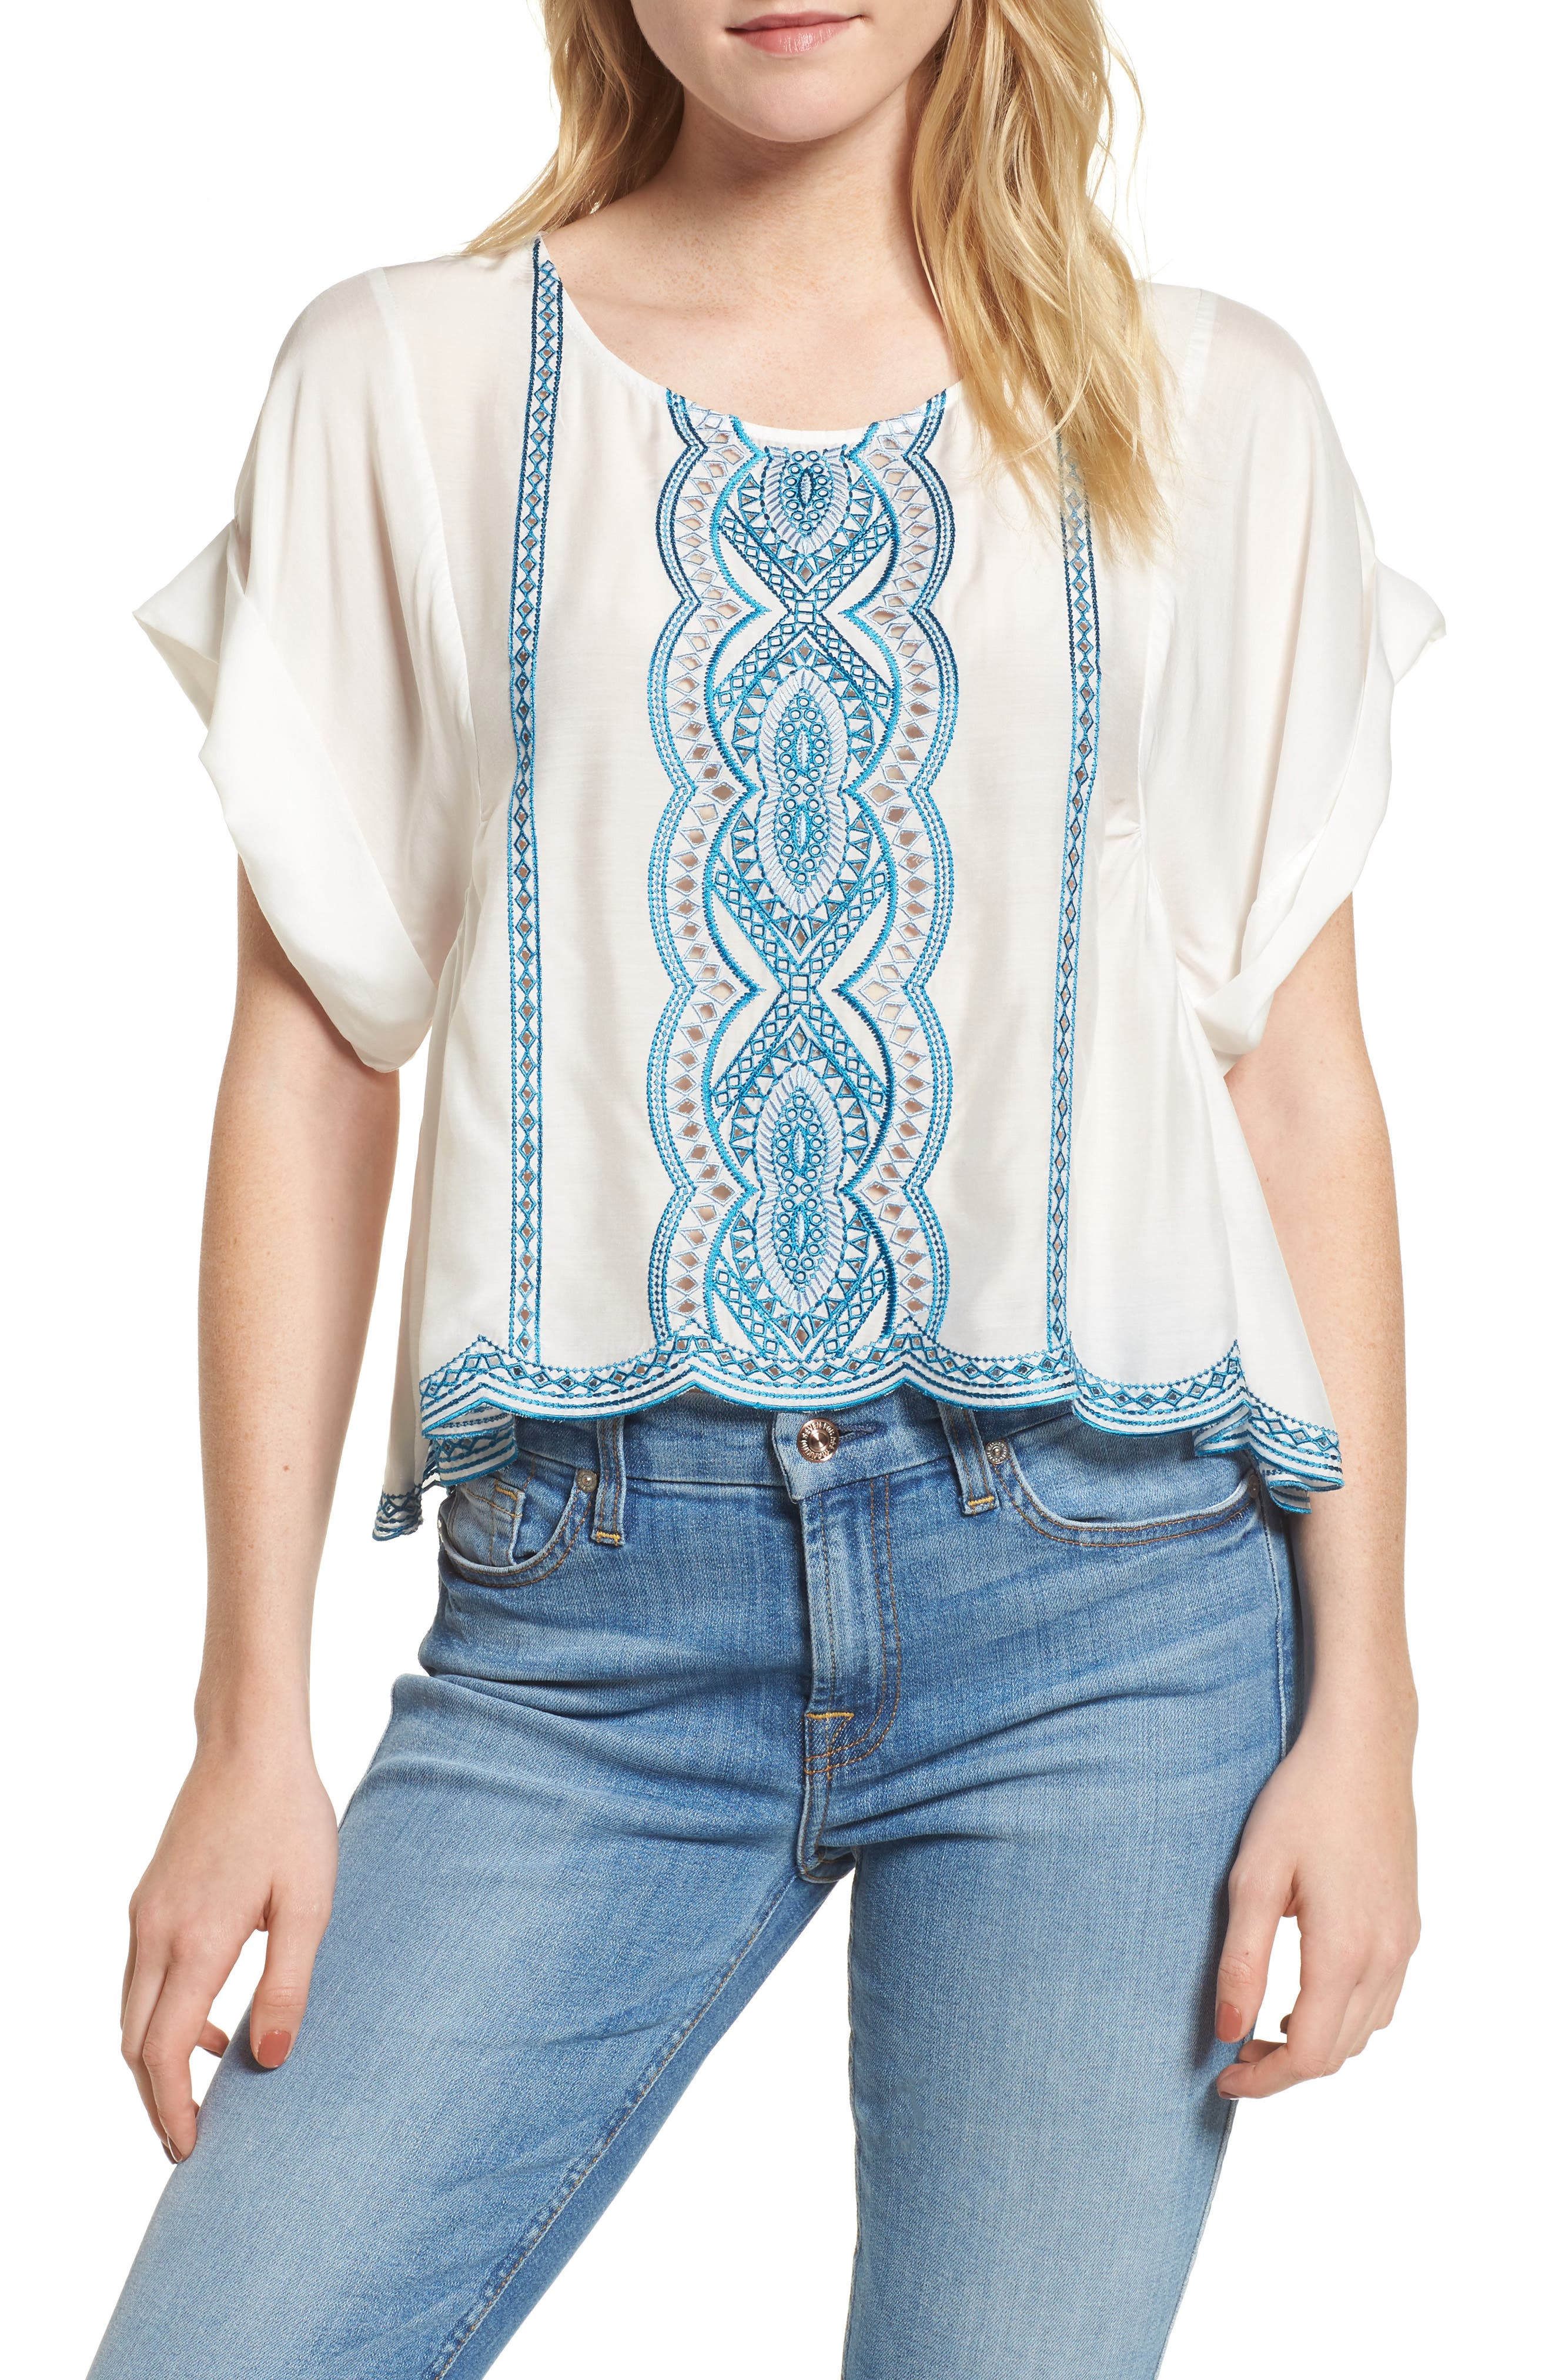 Main Image - Ella Moss Embroidered Top